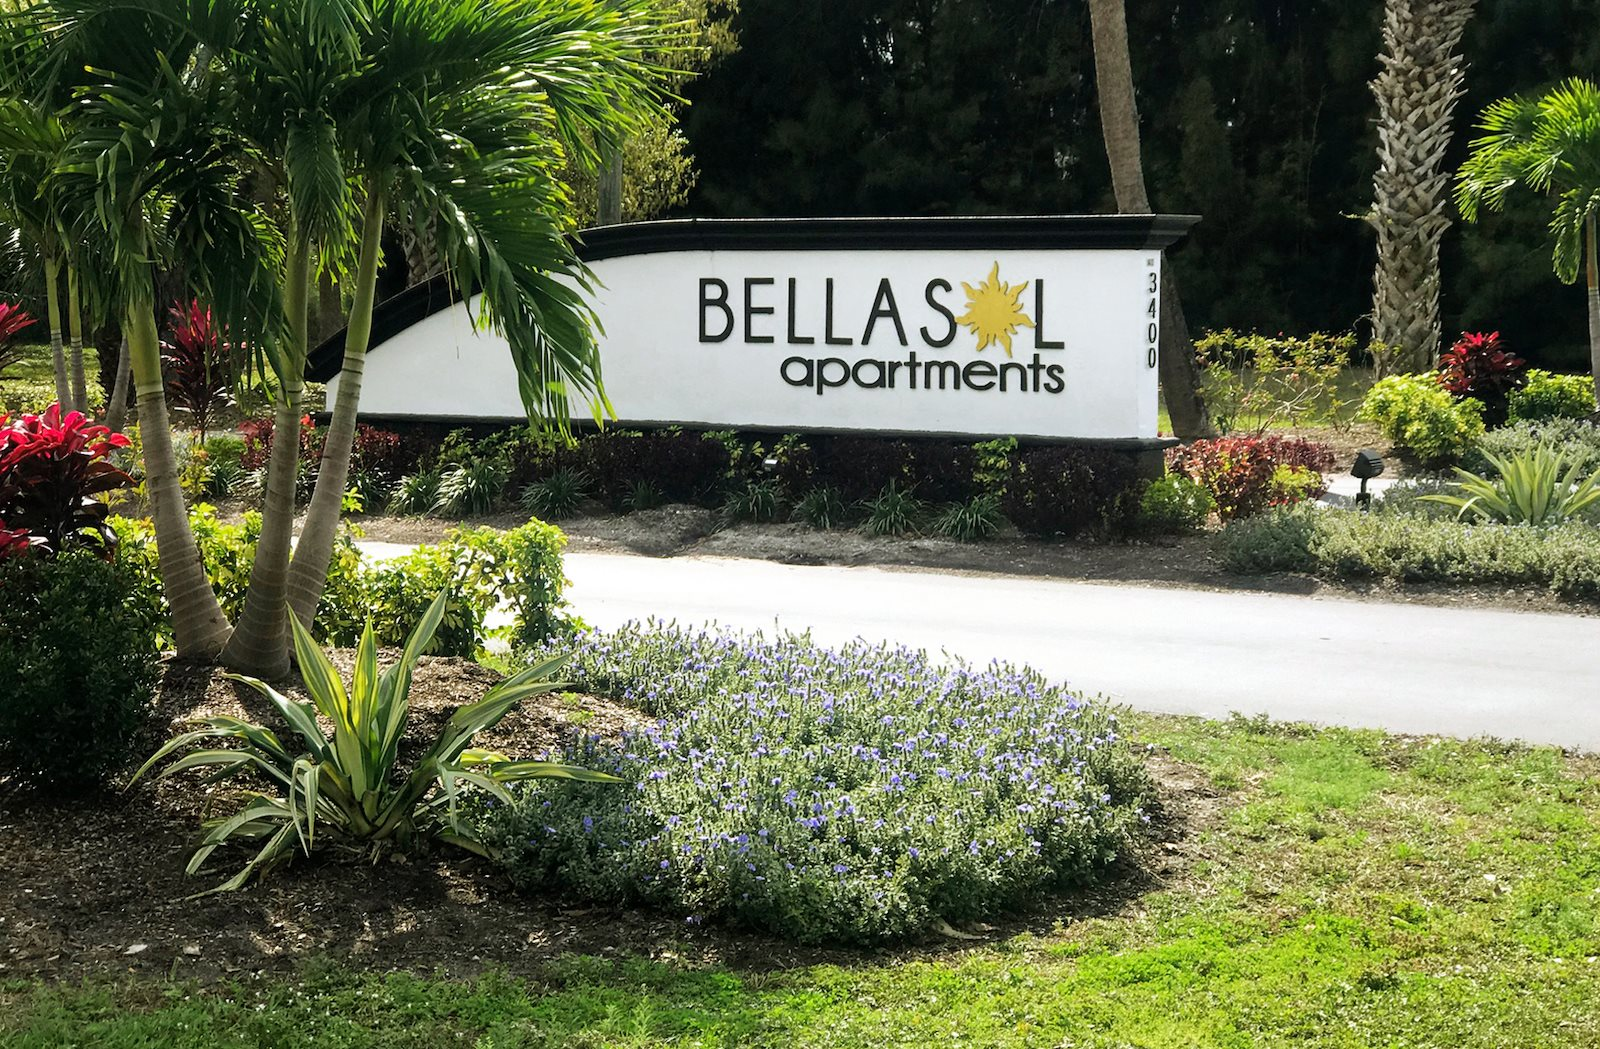 Bellasol Apartments entrance sign